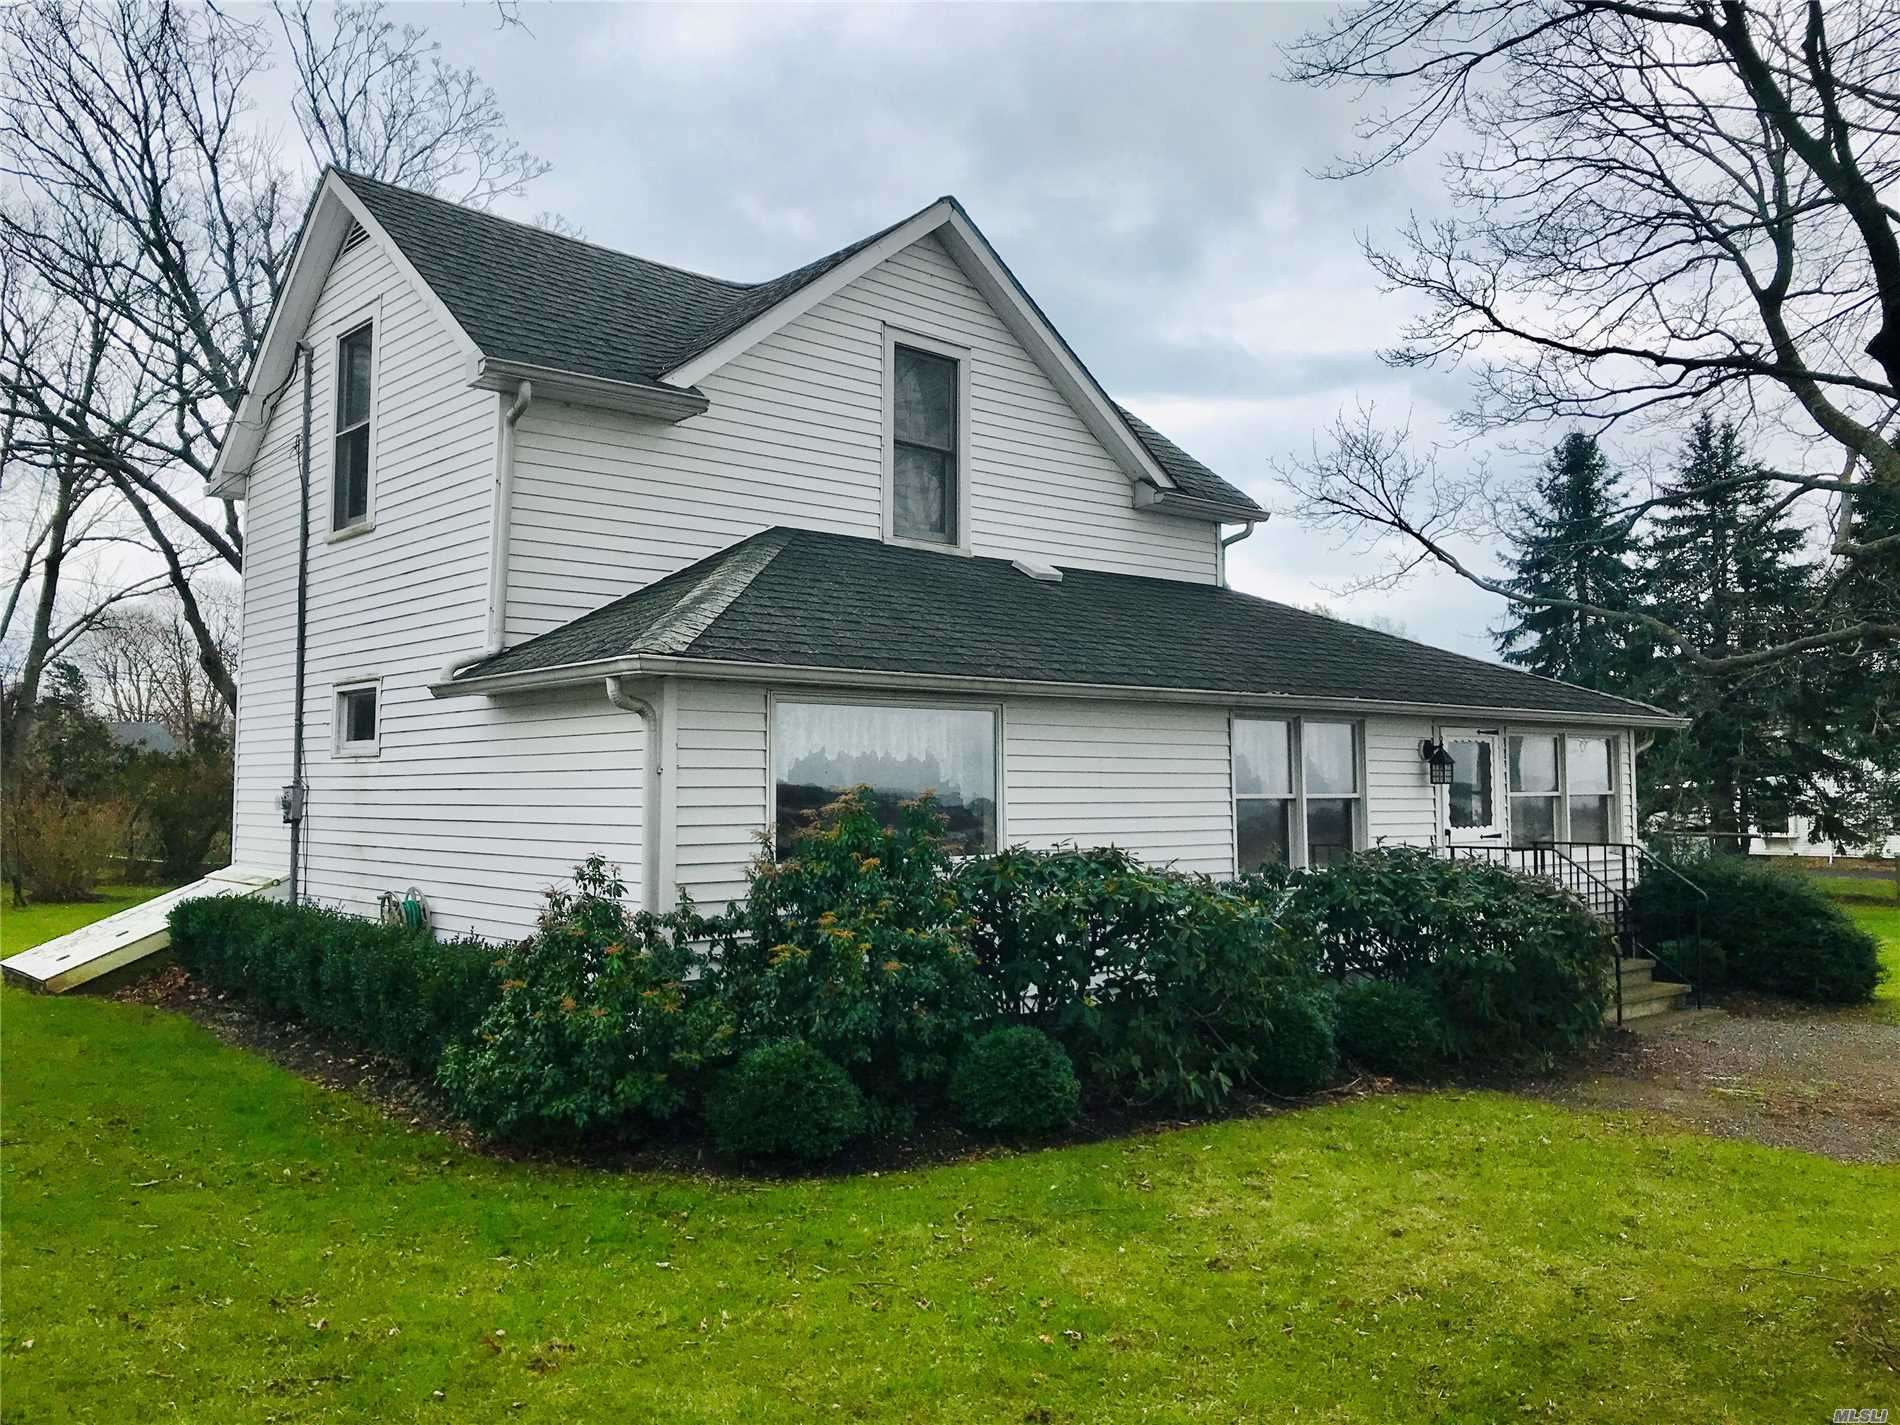 Two Bedroom, Two Bath Farmhouse Set On 1/2 Acre Overlooking Farm Fields And Bay In Orient. Bright And Sunny Home With Beautiful Exposure, Close To All Village Amenities, Jitney To Nyc, Farm Stand, Bay And Sound Beaches.